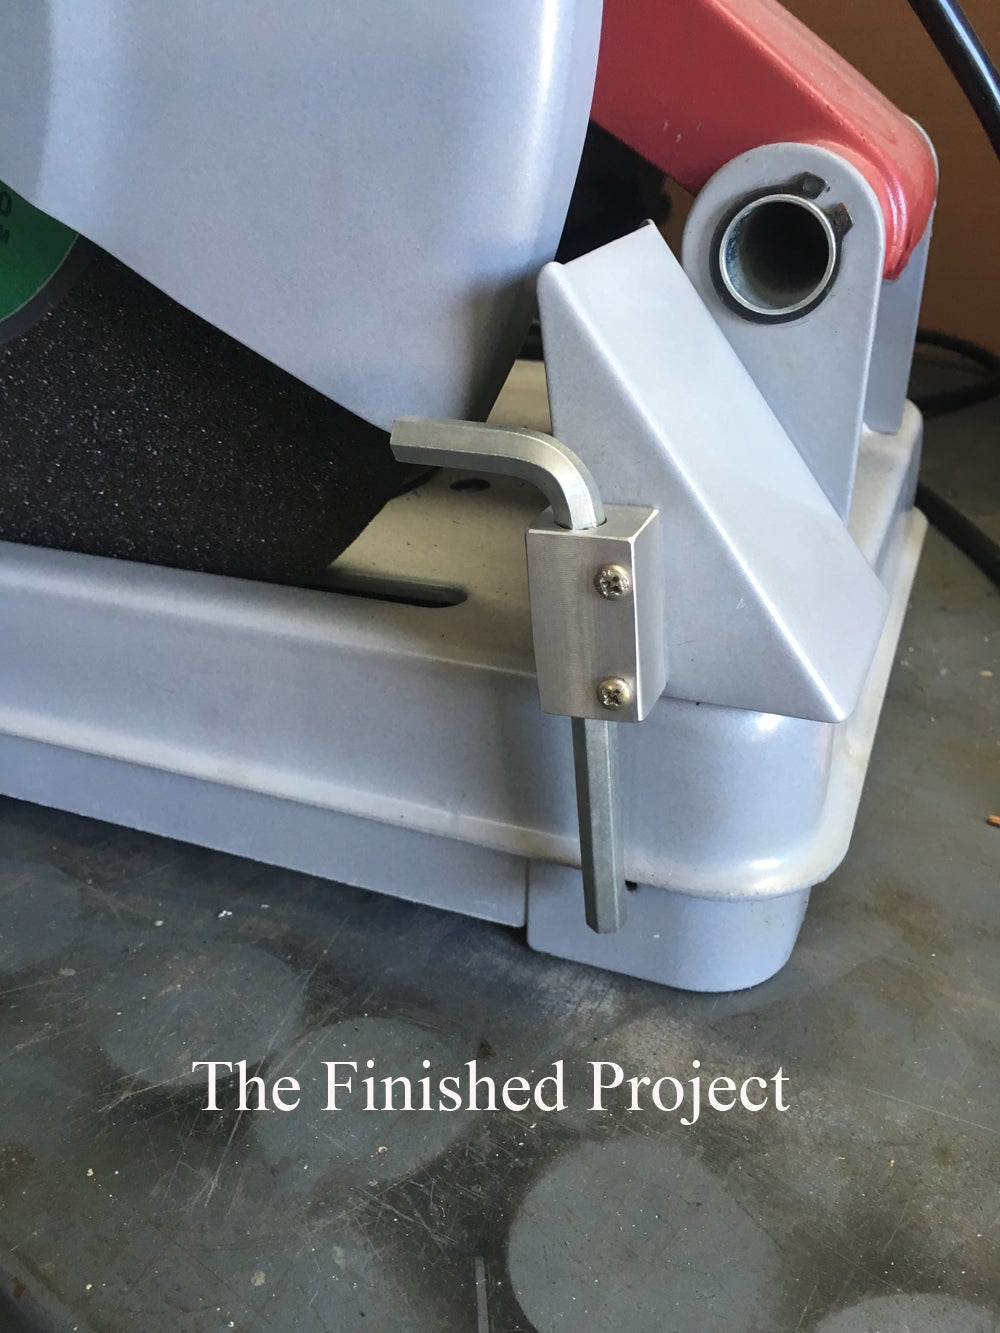 Finishing the Project